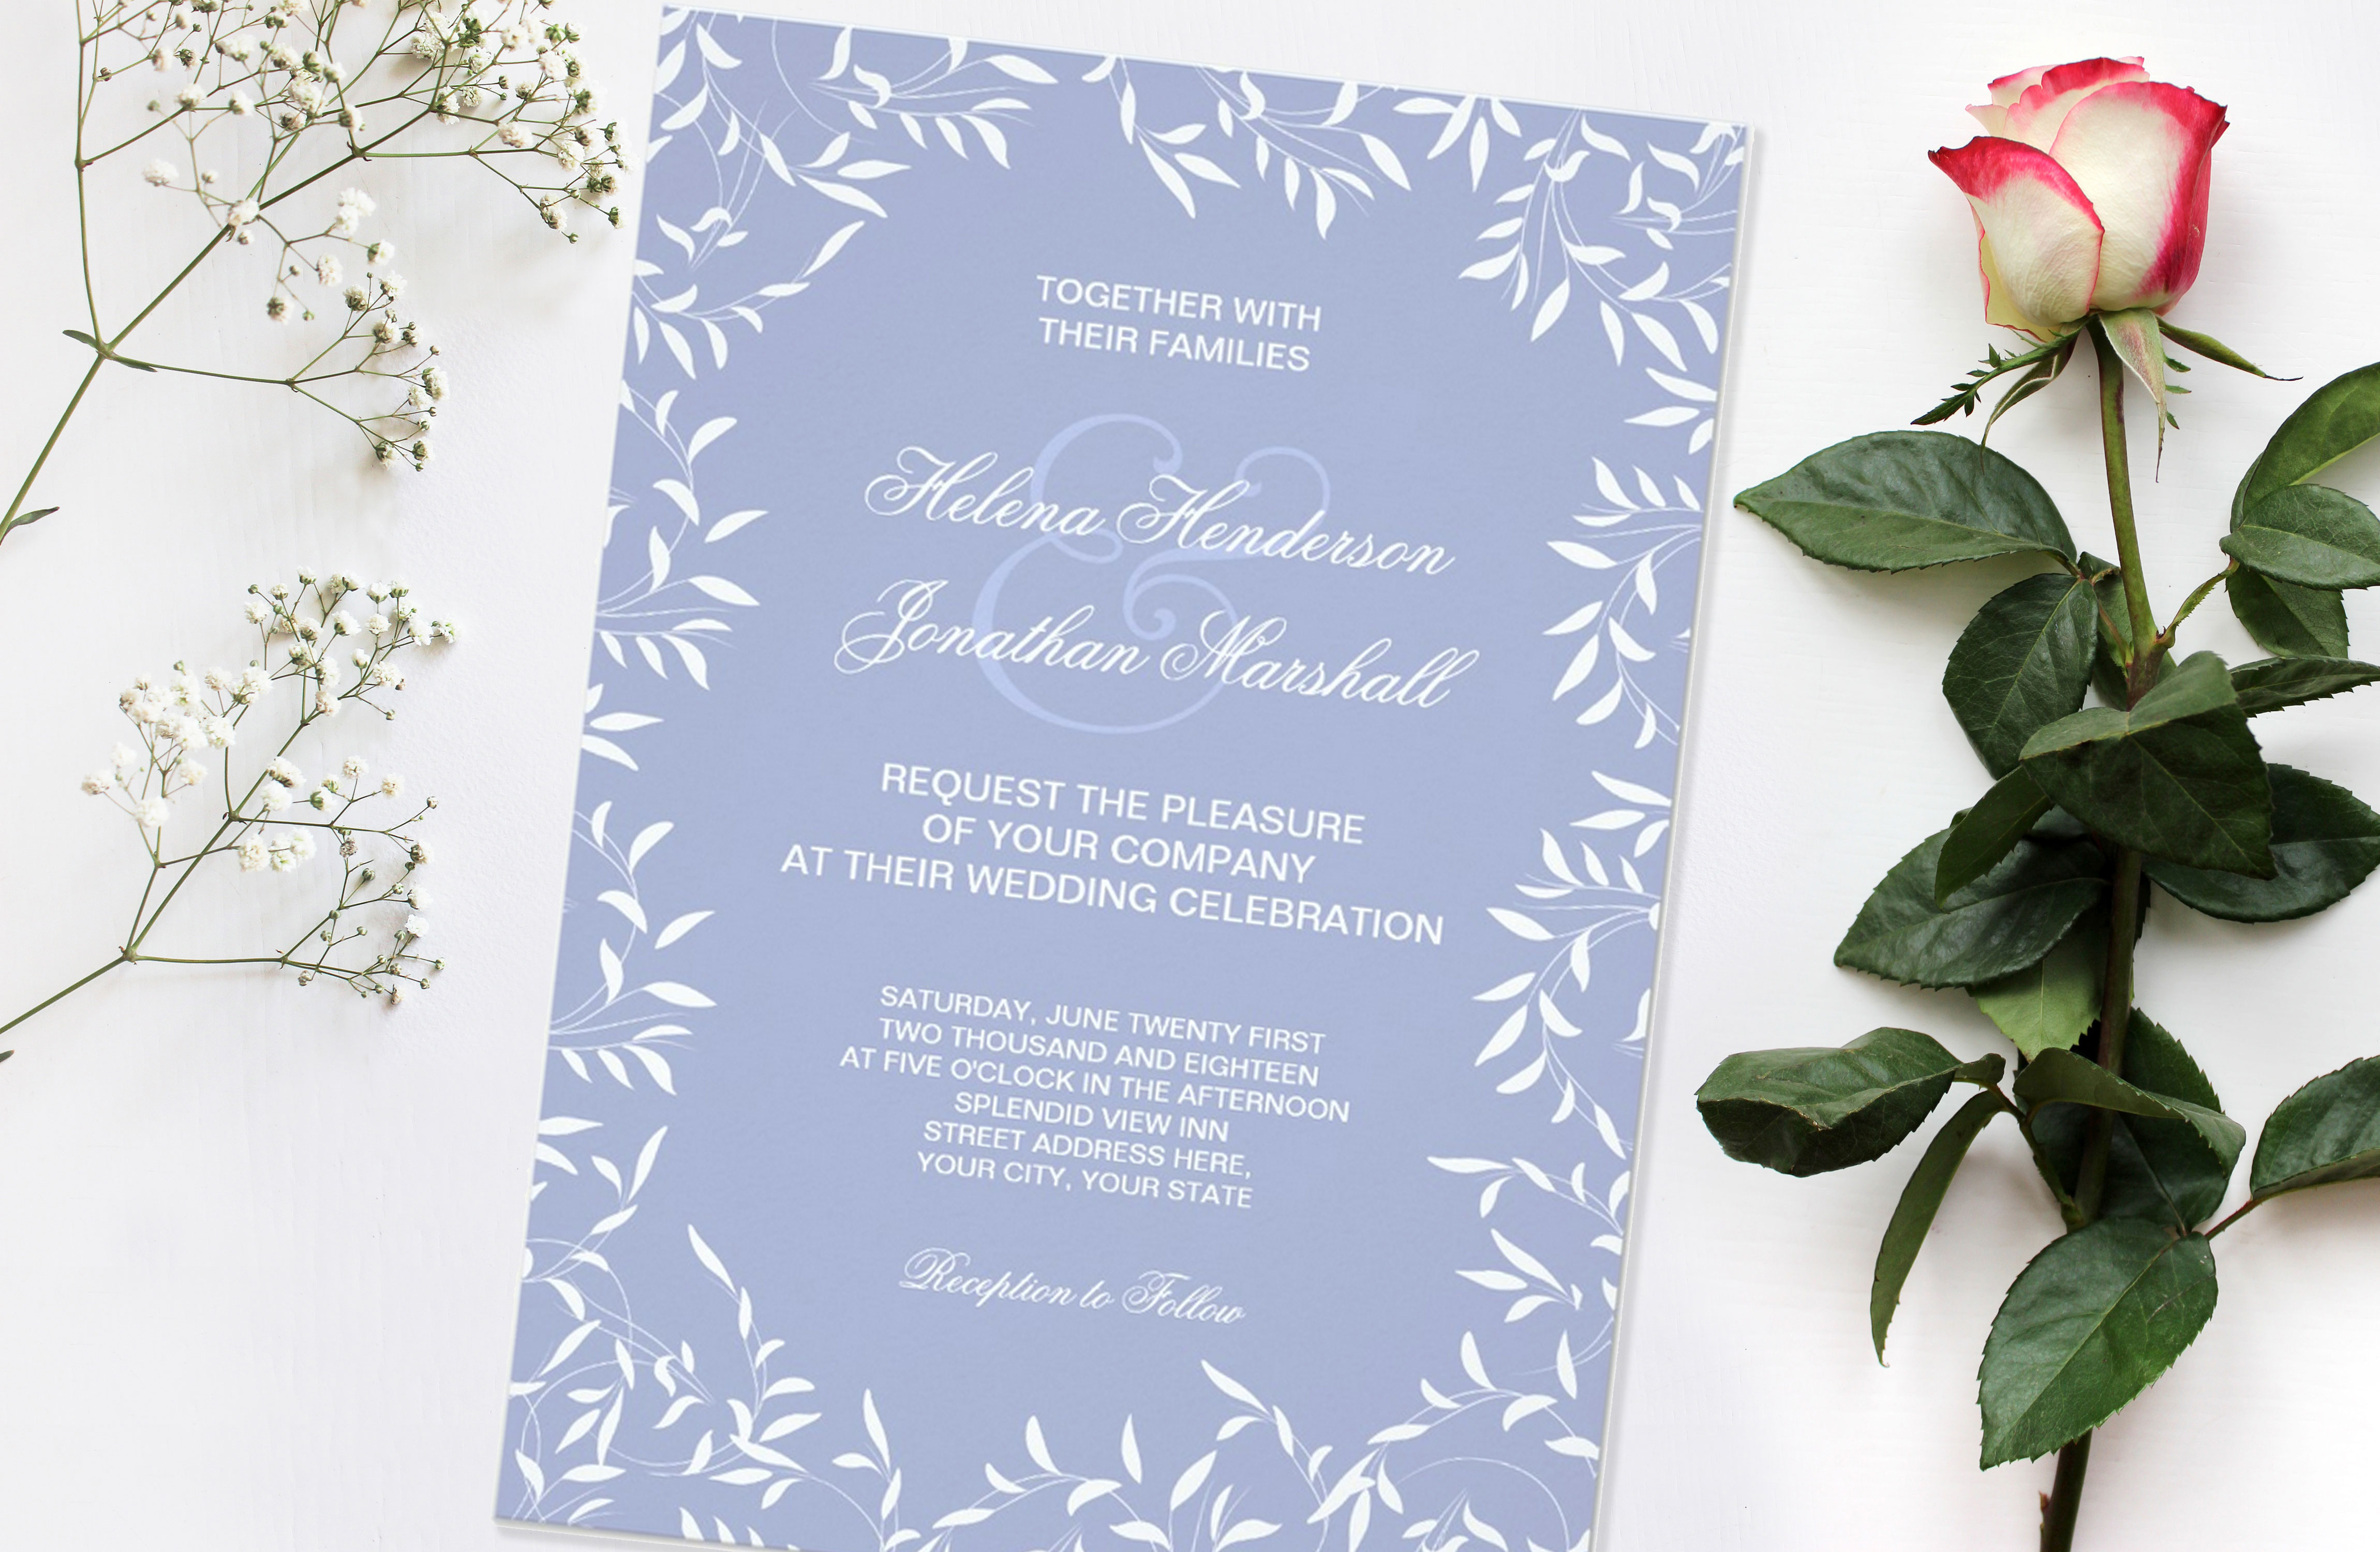 Willow Garden Wedding Invitation